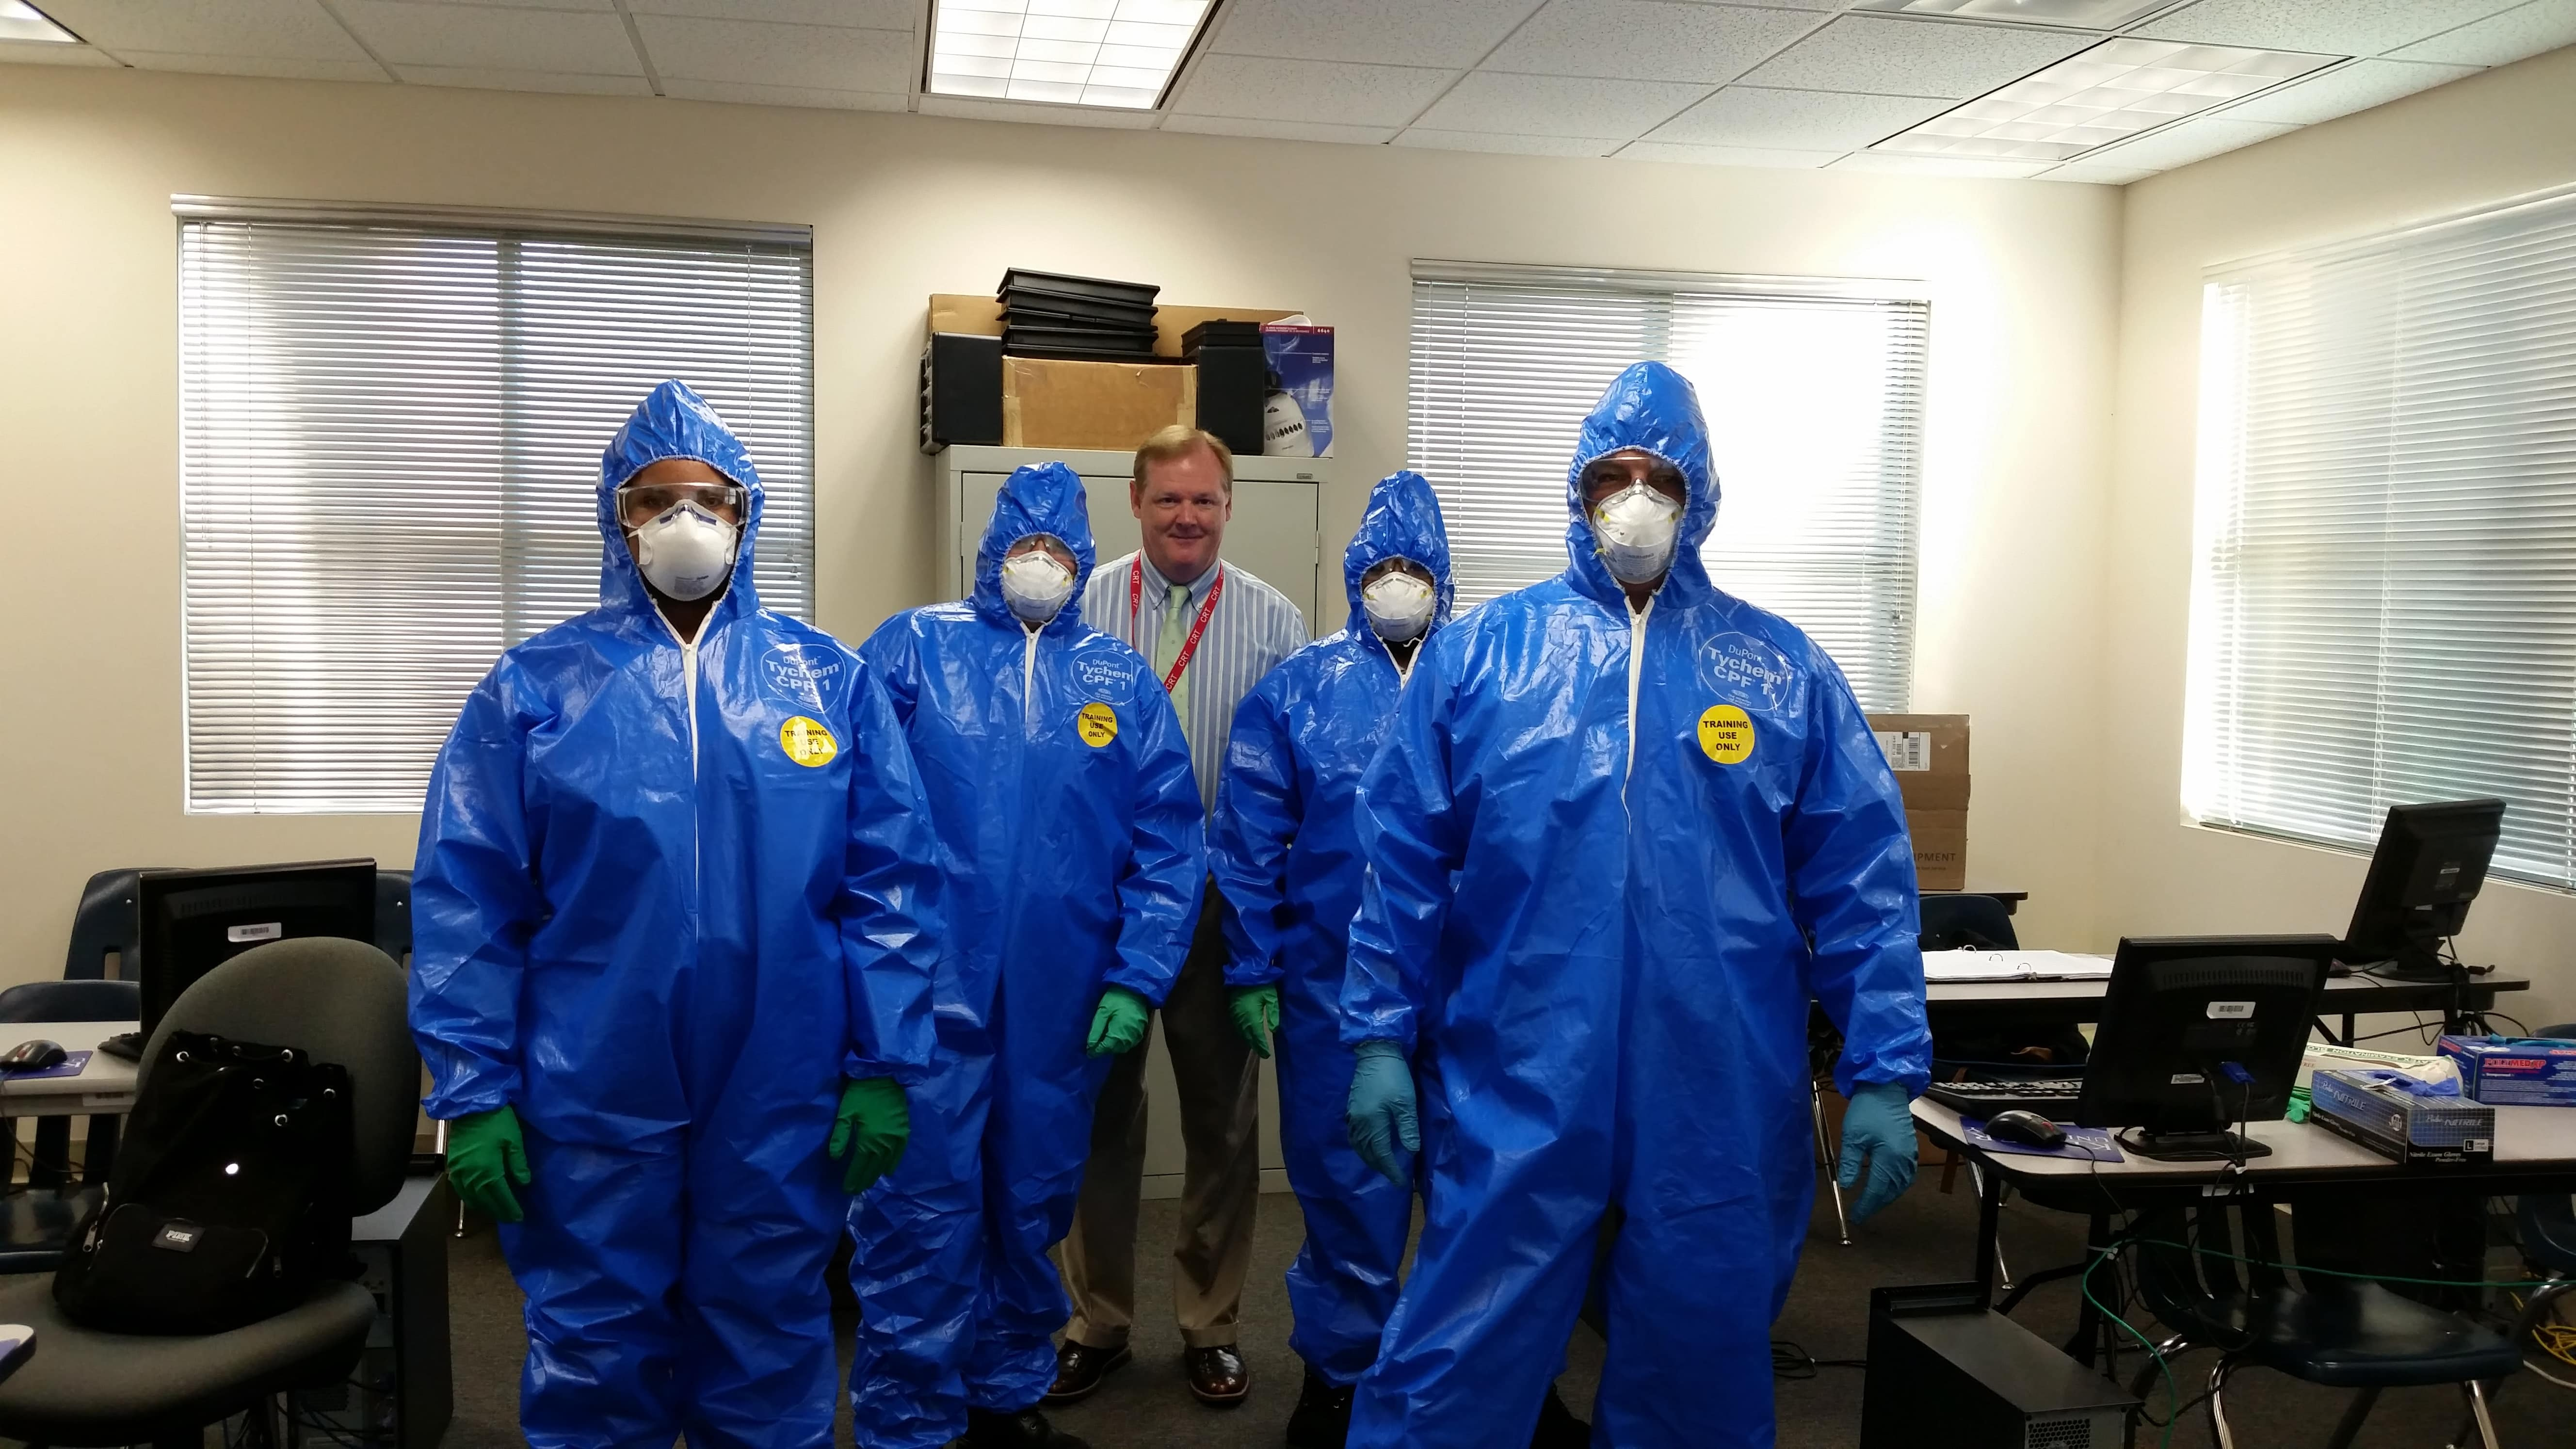 Sarasota Forensic Investigation Students in Personal Protective Equipment for Crime Scene Safety Course